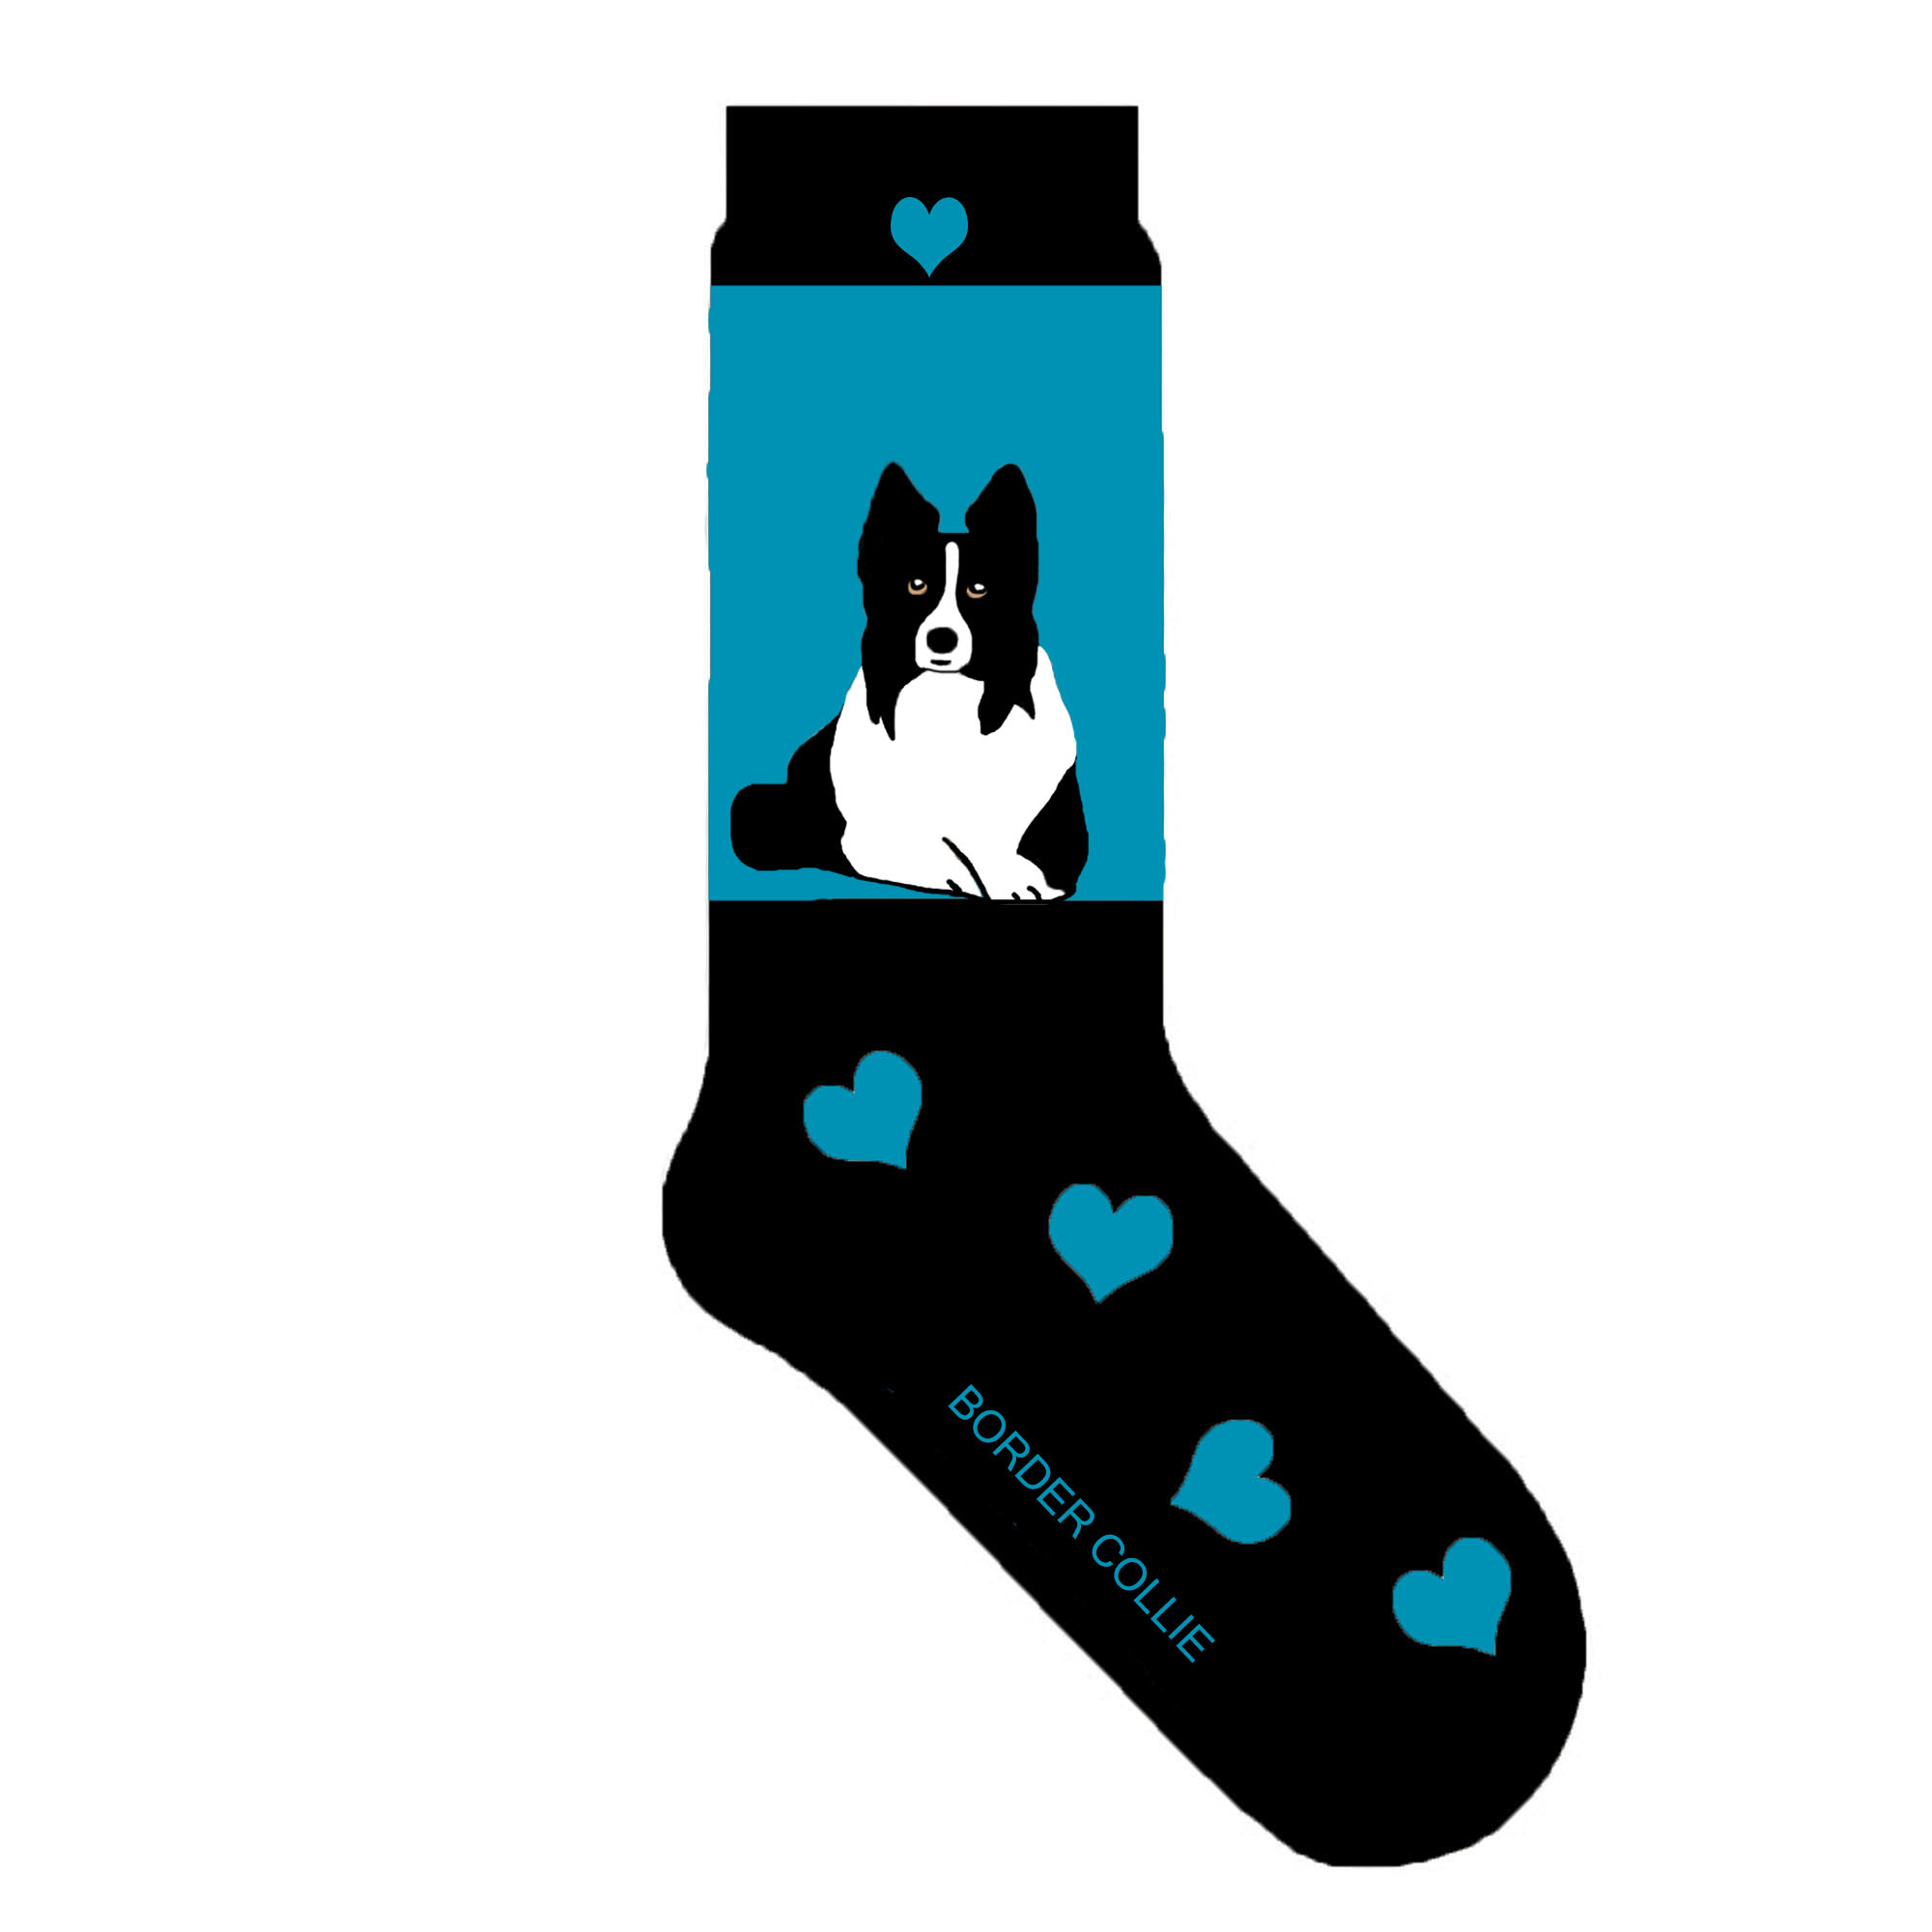 border collie socks women crew socks with dog mom border collie puppy gift pup theme cotton